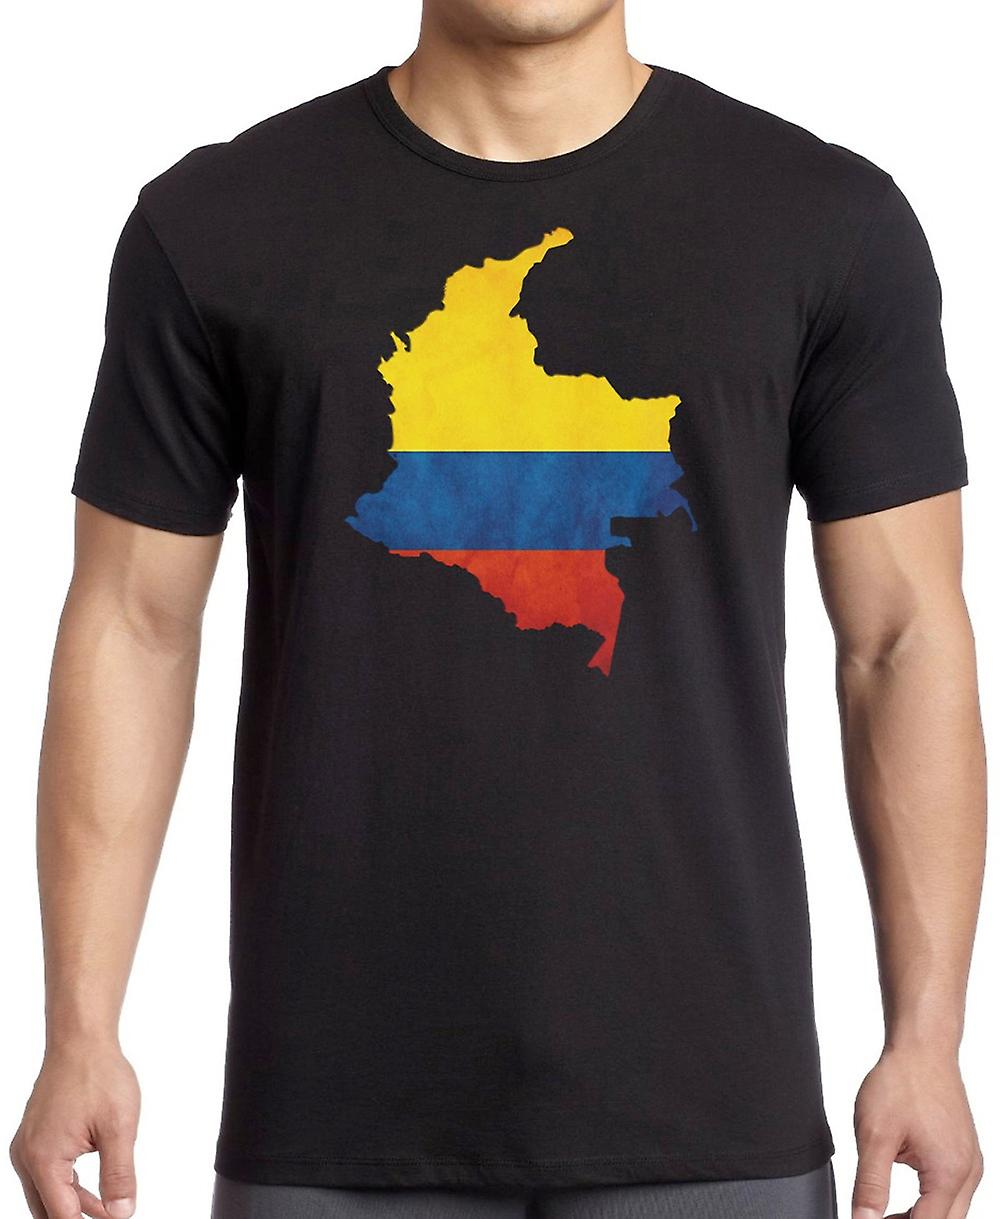 Colombie-Britannique Carte de drapeau - T-shirt - 5XL